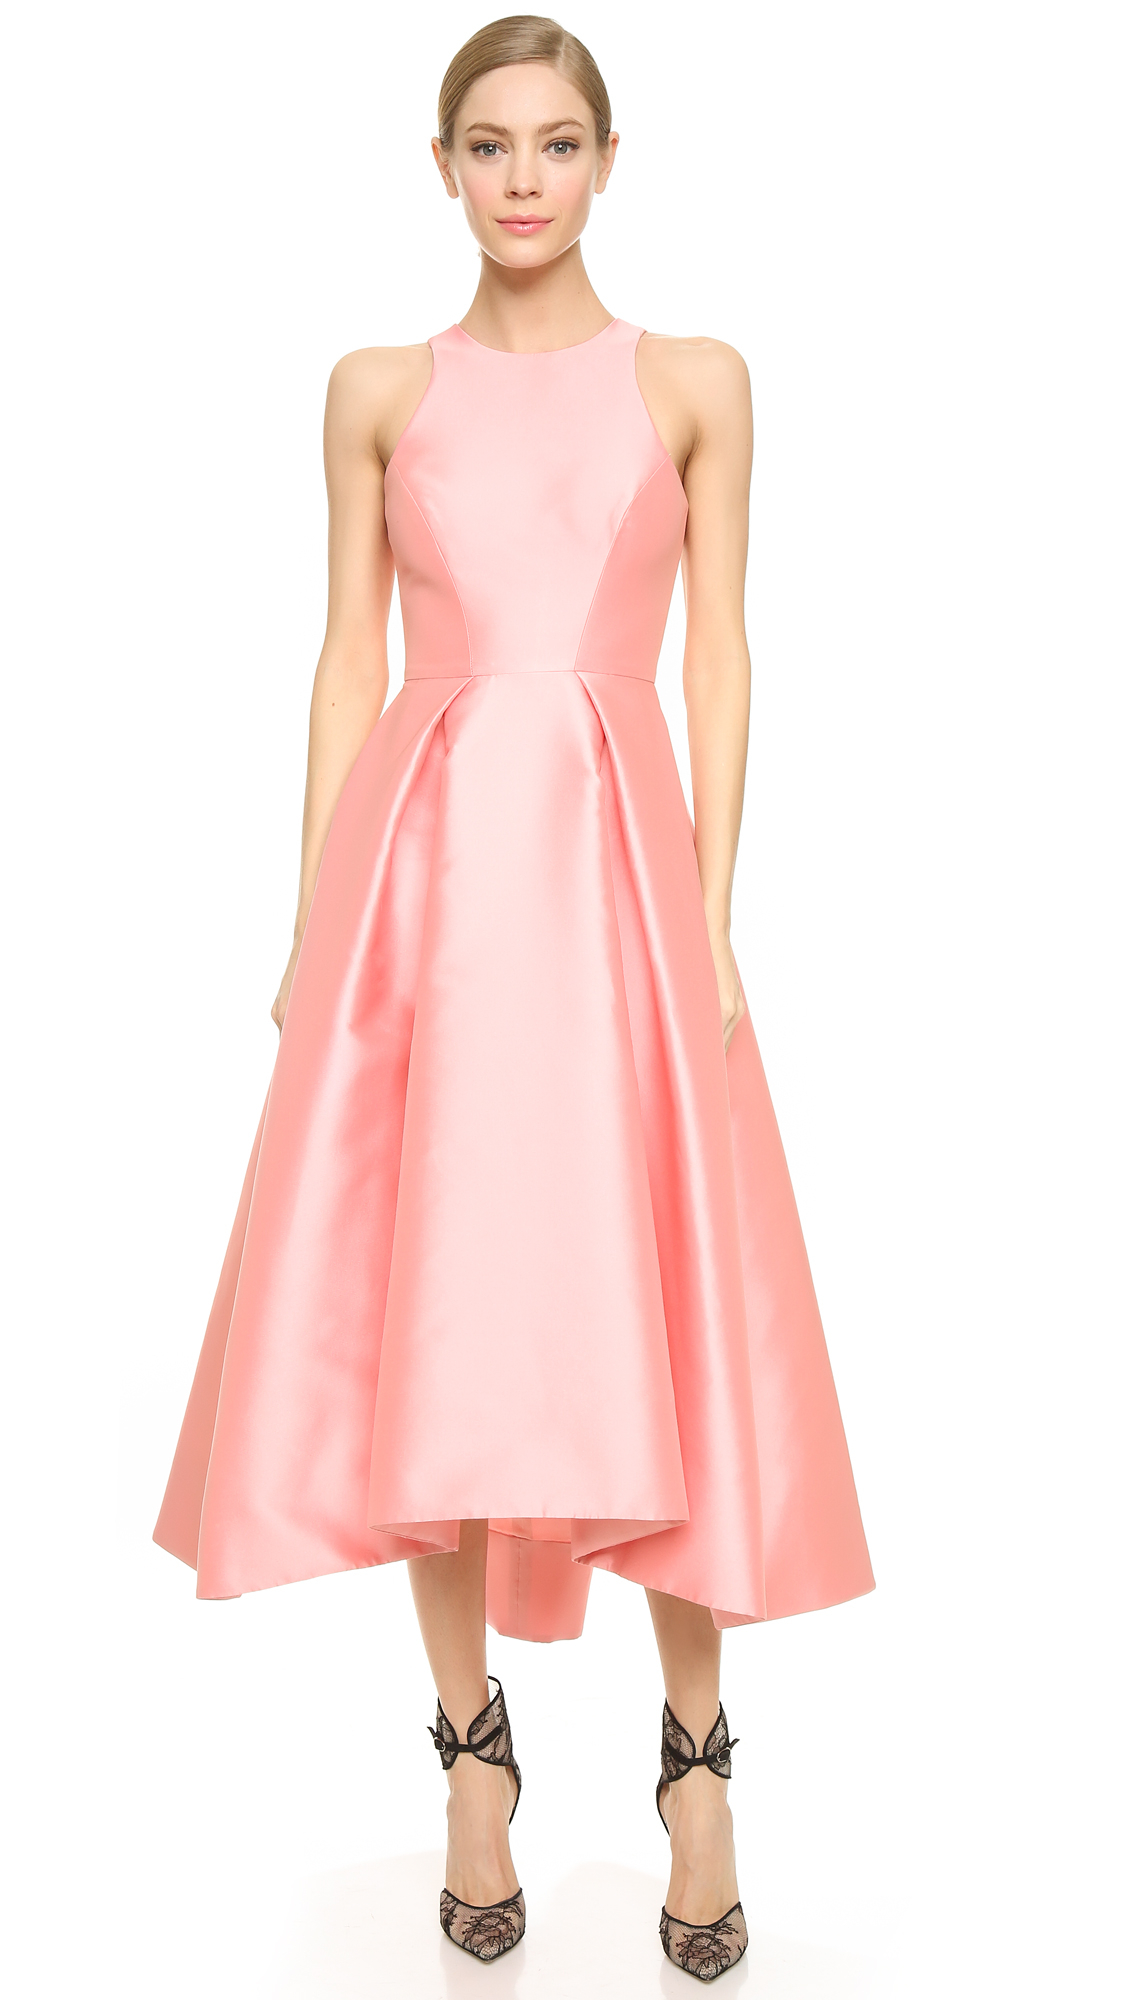 Monique Lhuillier Structured Party Dress